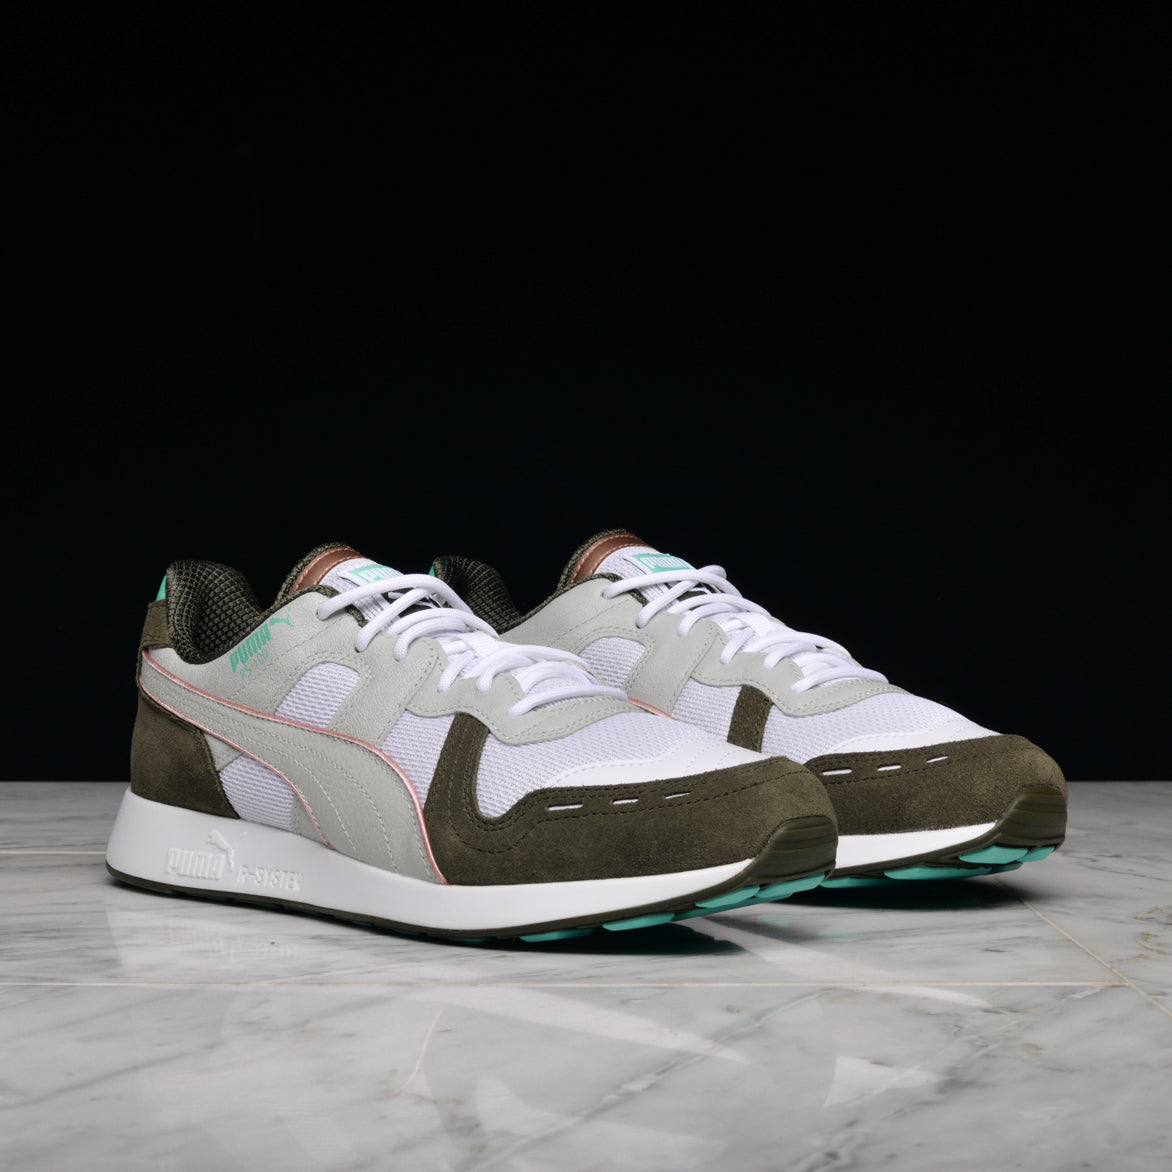 "EMORY JONES X PUMA RS-100 ""BET ON YOURSELF"" - WHITE / FOREST NIGHT"